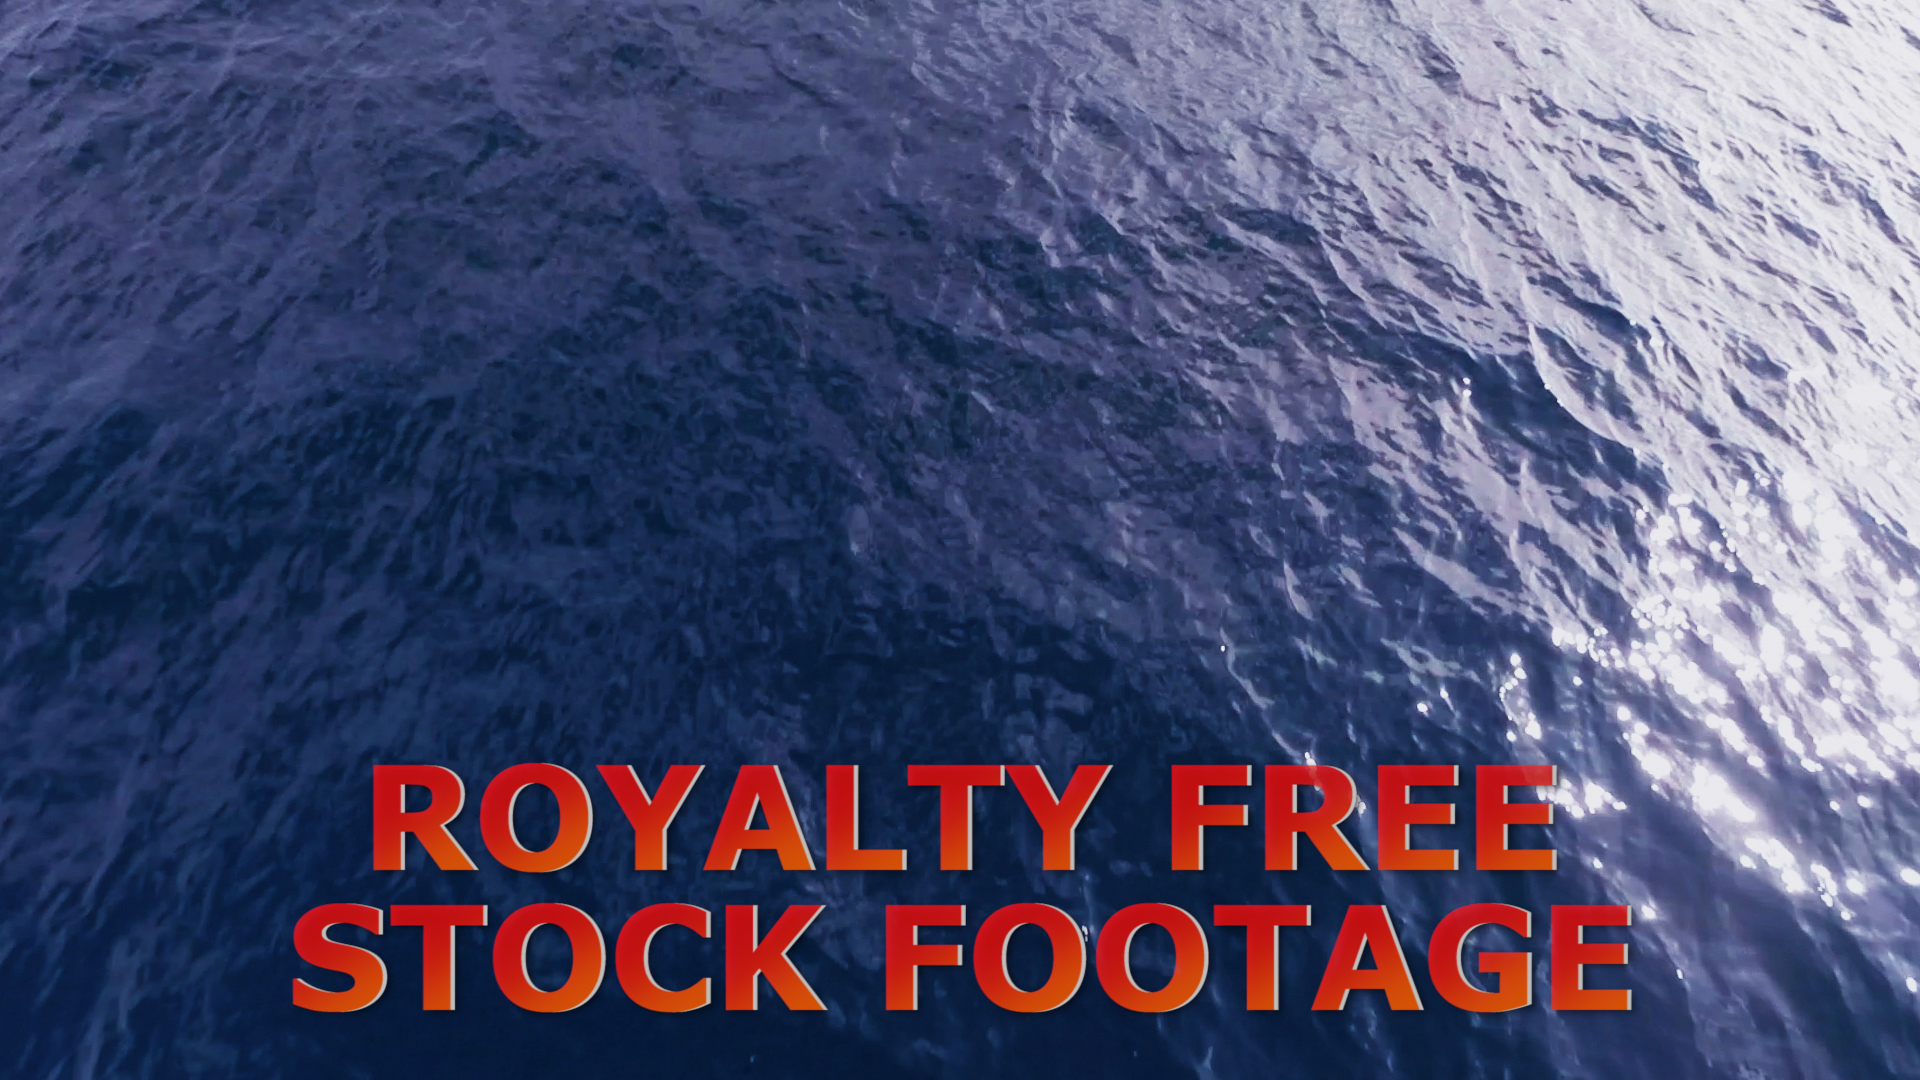 For information on licensing footage from the discovery family of networks, please visit discovery access. Flying Over Water Motion Backgrounds Royalty Free Stock ...